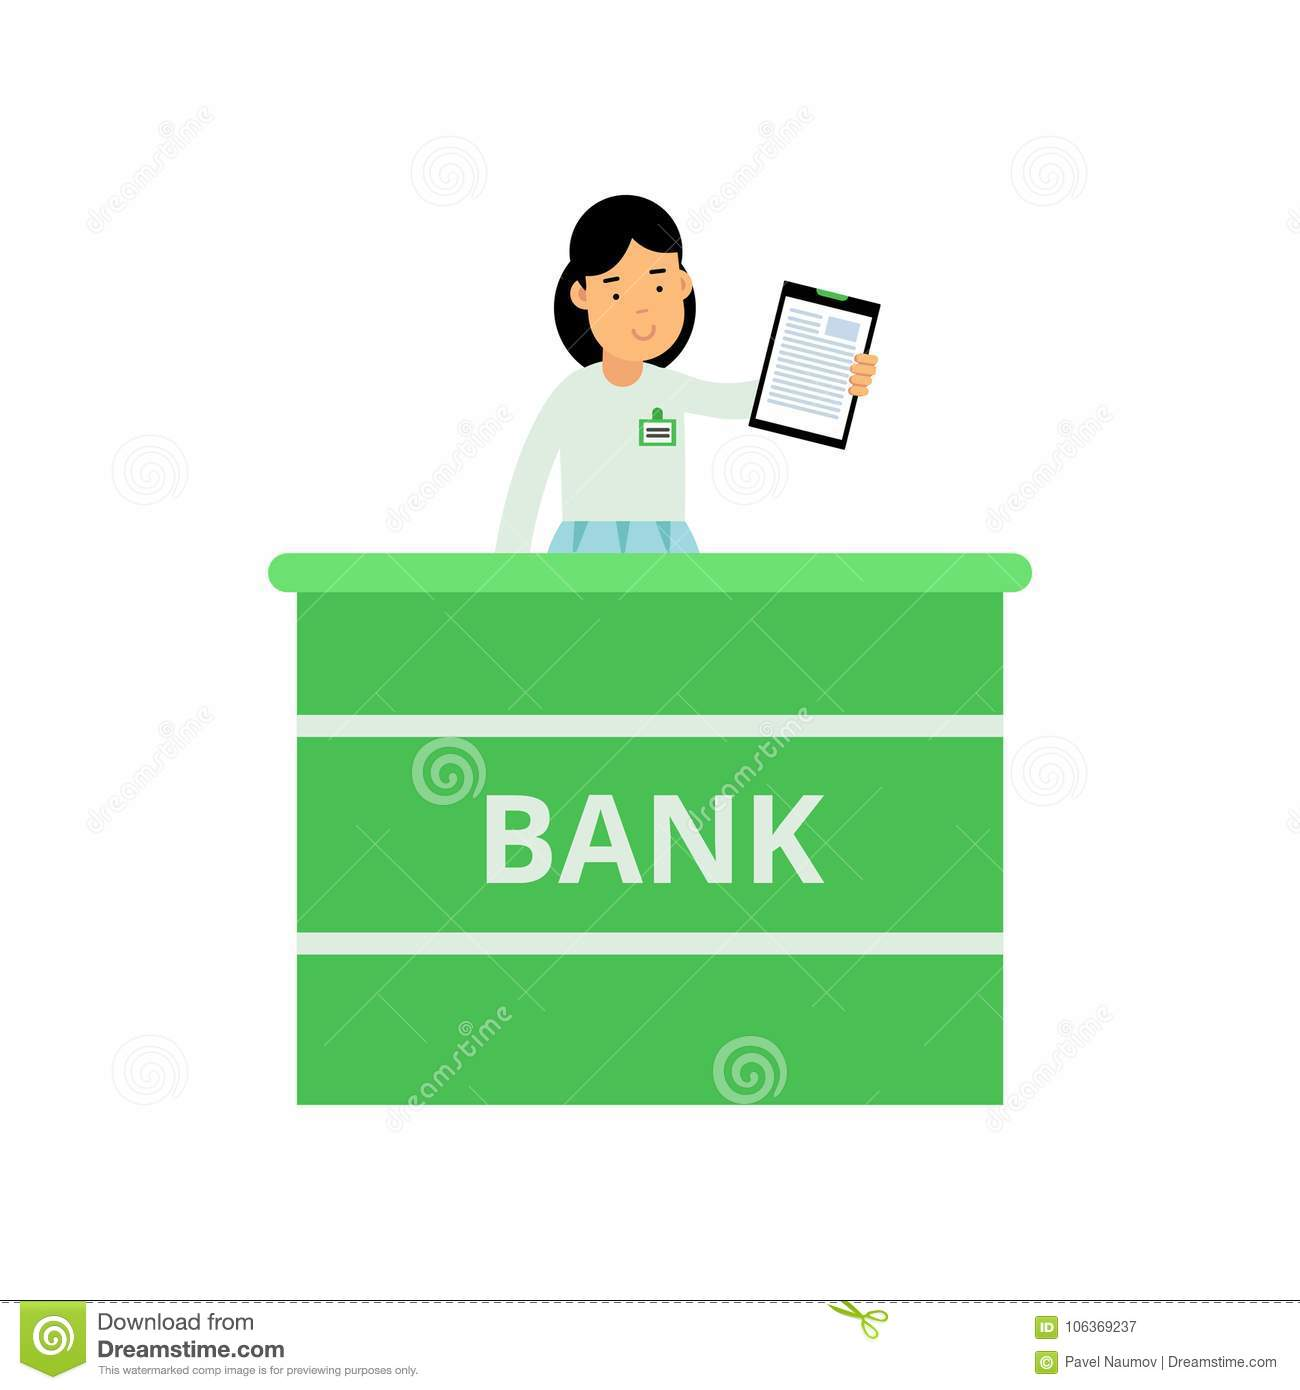 Professional Banking Worker Standing Behind Reception Desk ... on cartoon report form, cartoon registration form, cartoon filling out a form, cartoon admission form, italian application form, germany application form, pen and paper cartoon form, sports application form, cheerleader application form, mom application form, cartoon computer form, trademark application form, christmas application form, martial arts application form, drawing application form, german application form, cartoon job application, cartoon credit application, people cartoon form,